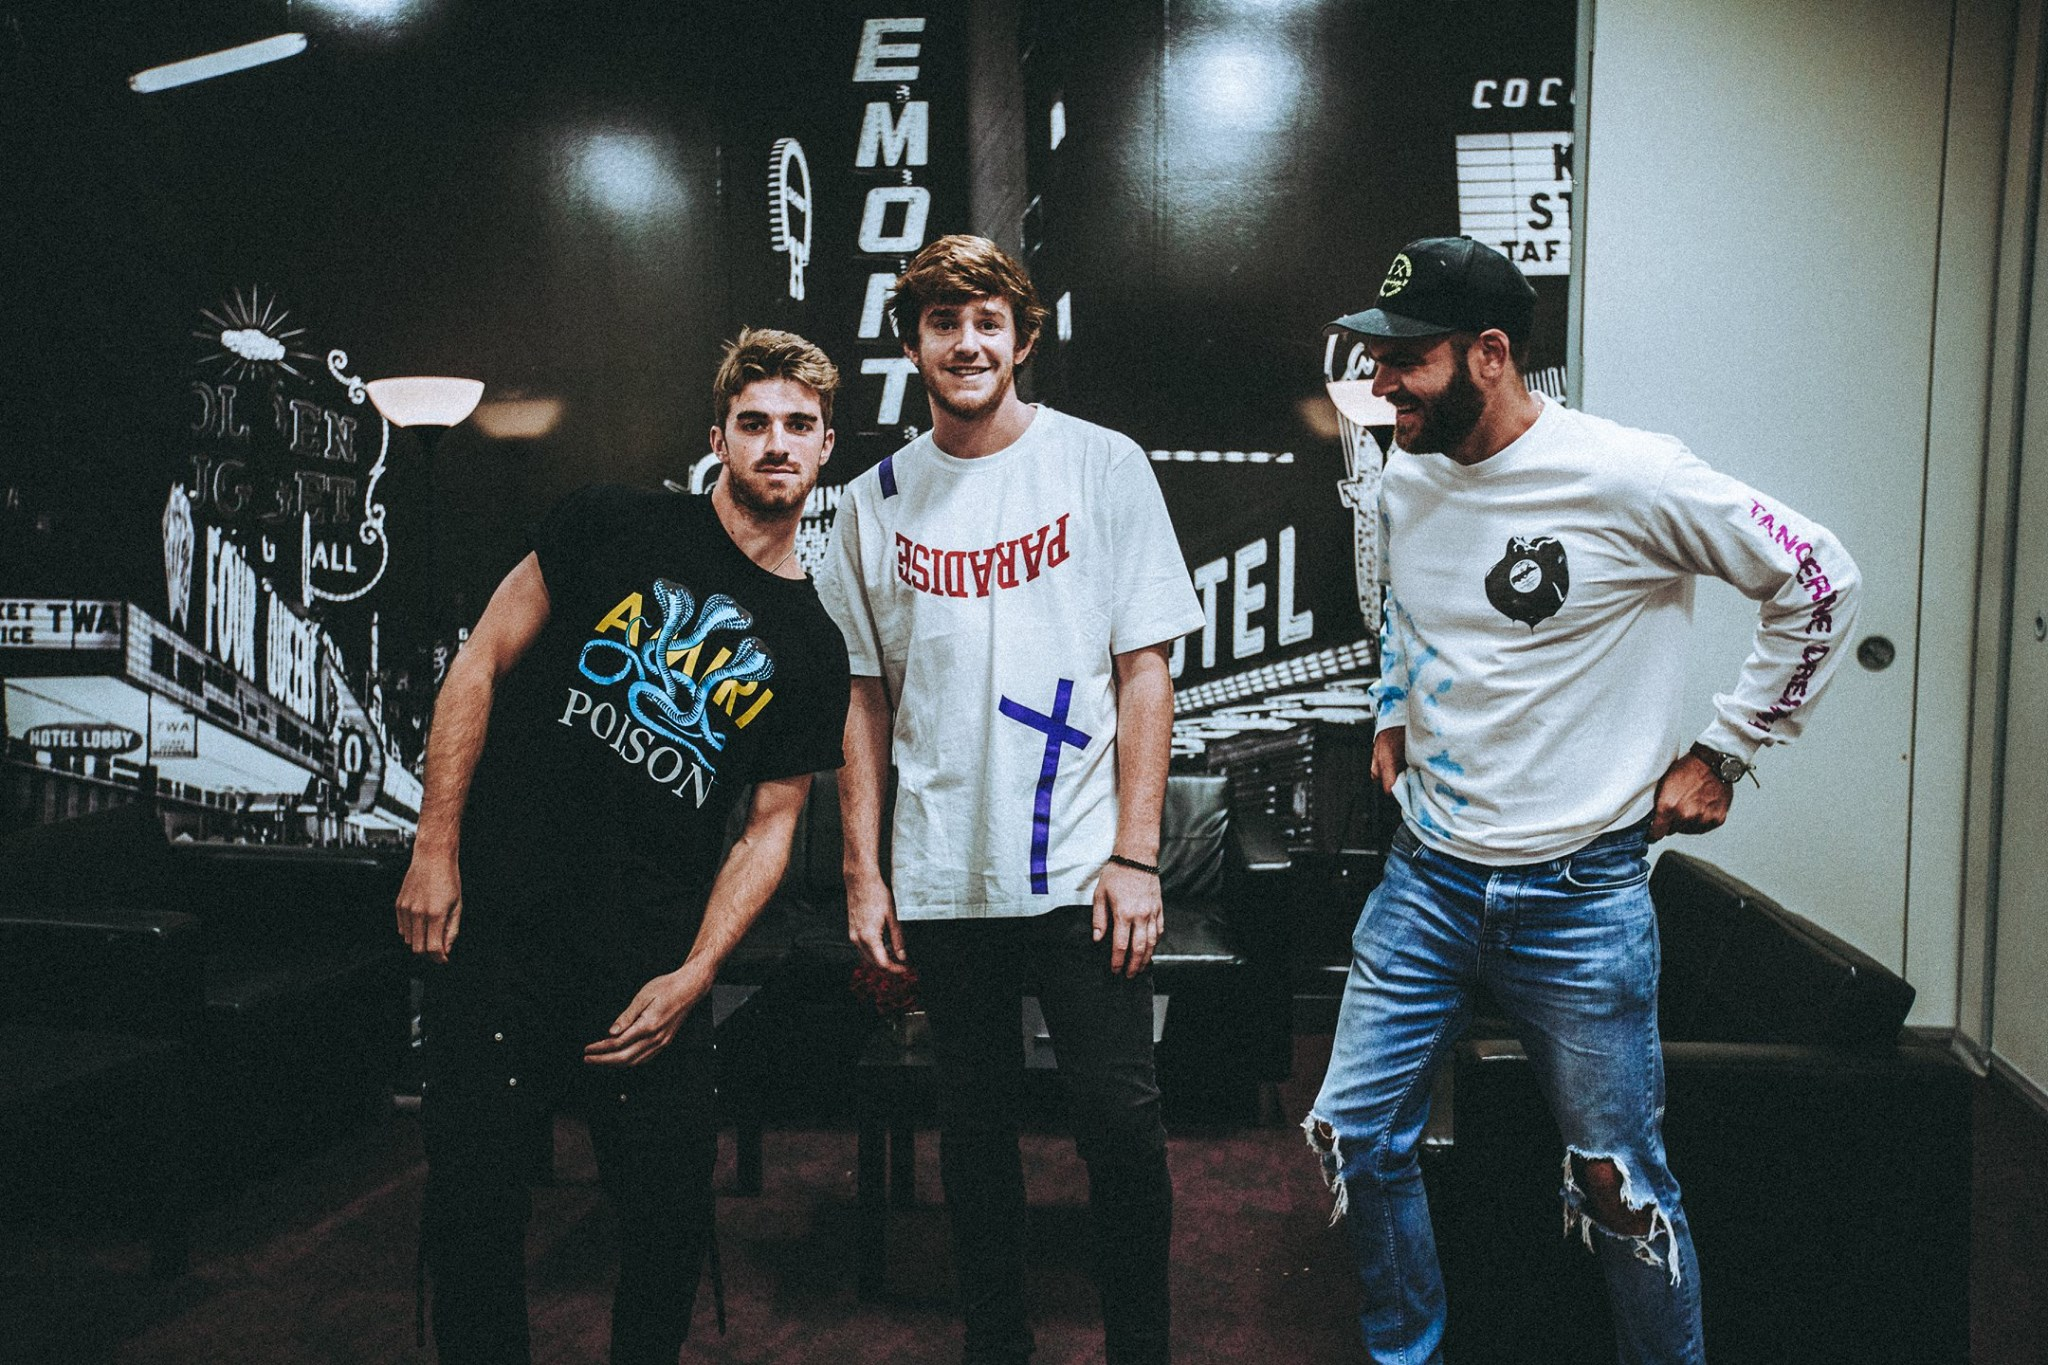 The chainsmokers NGHTMRE